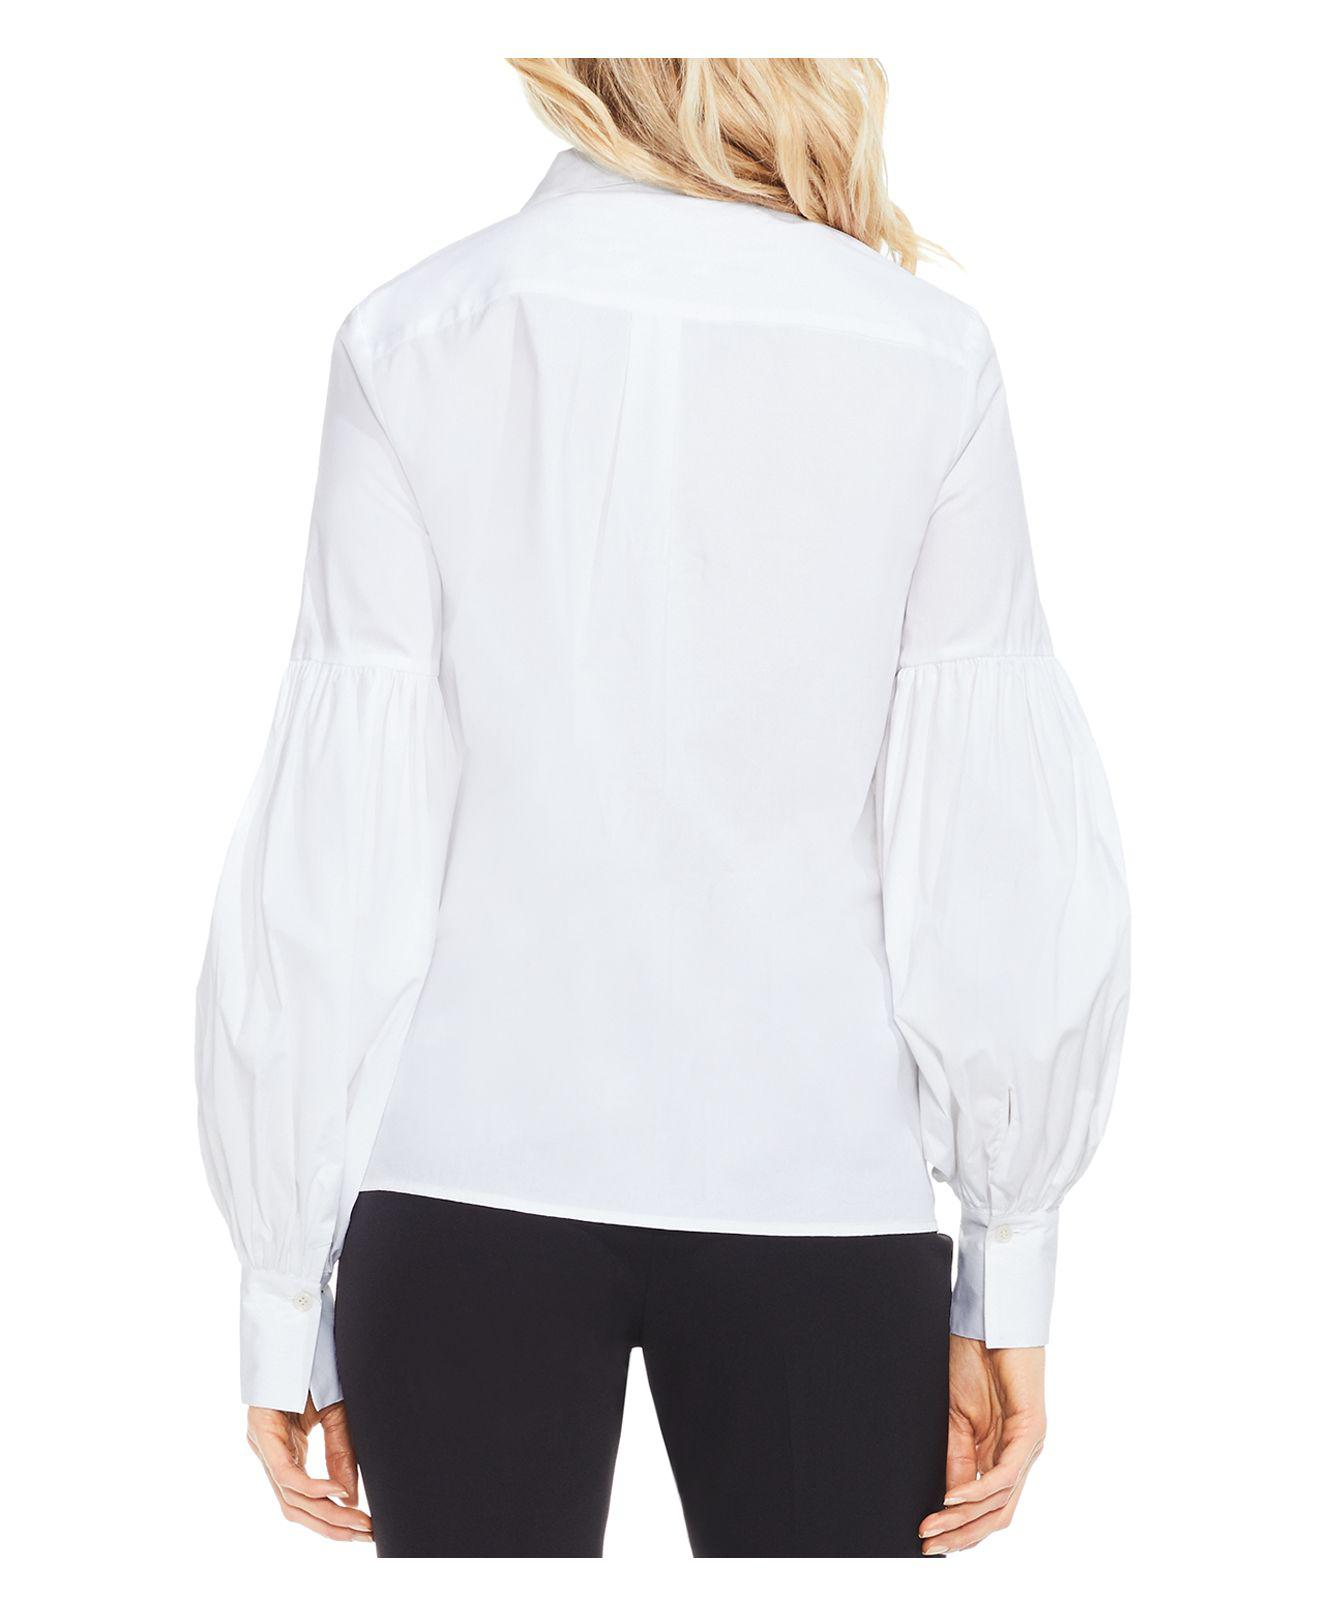 f1a24bf2 Vince Camuto Puff Sleeve Button Down Shirt in White - Lyst